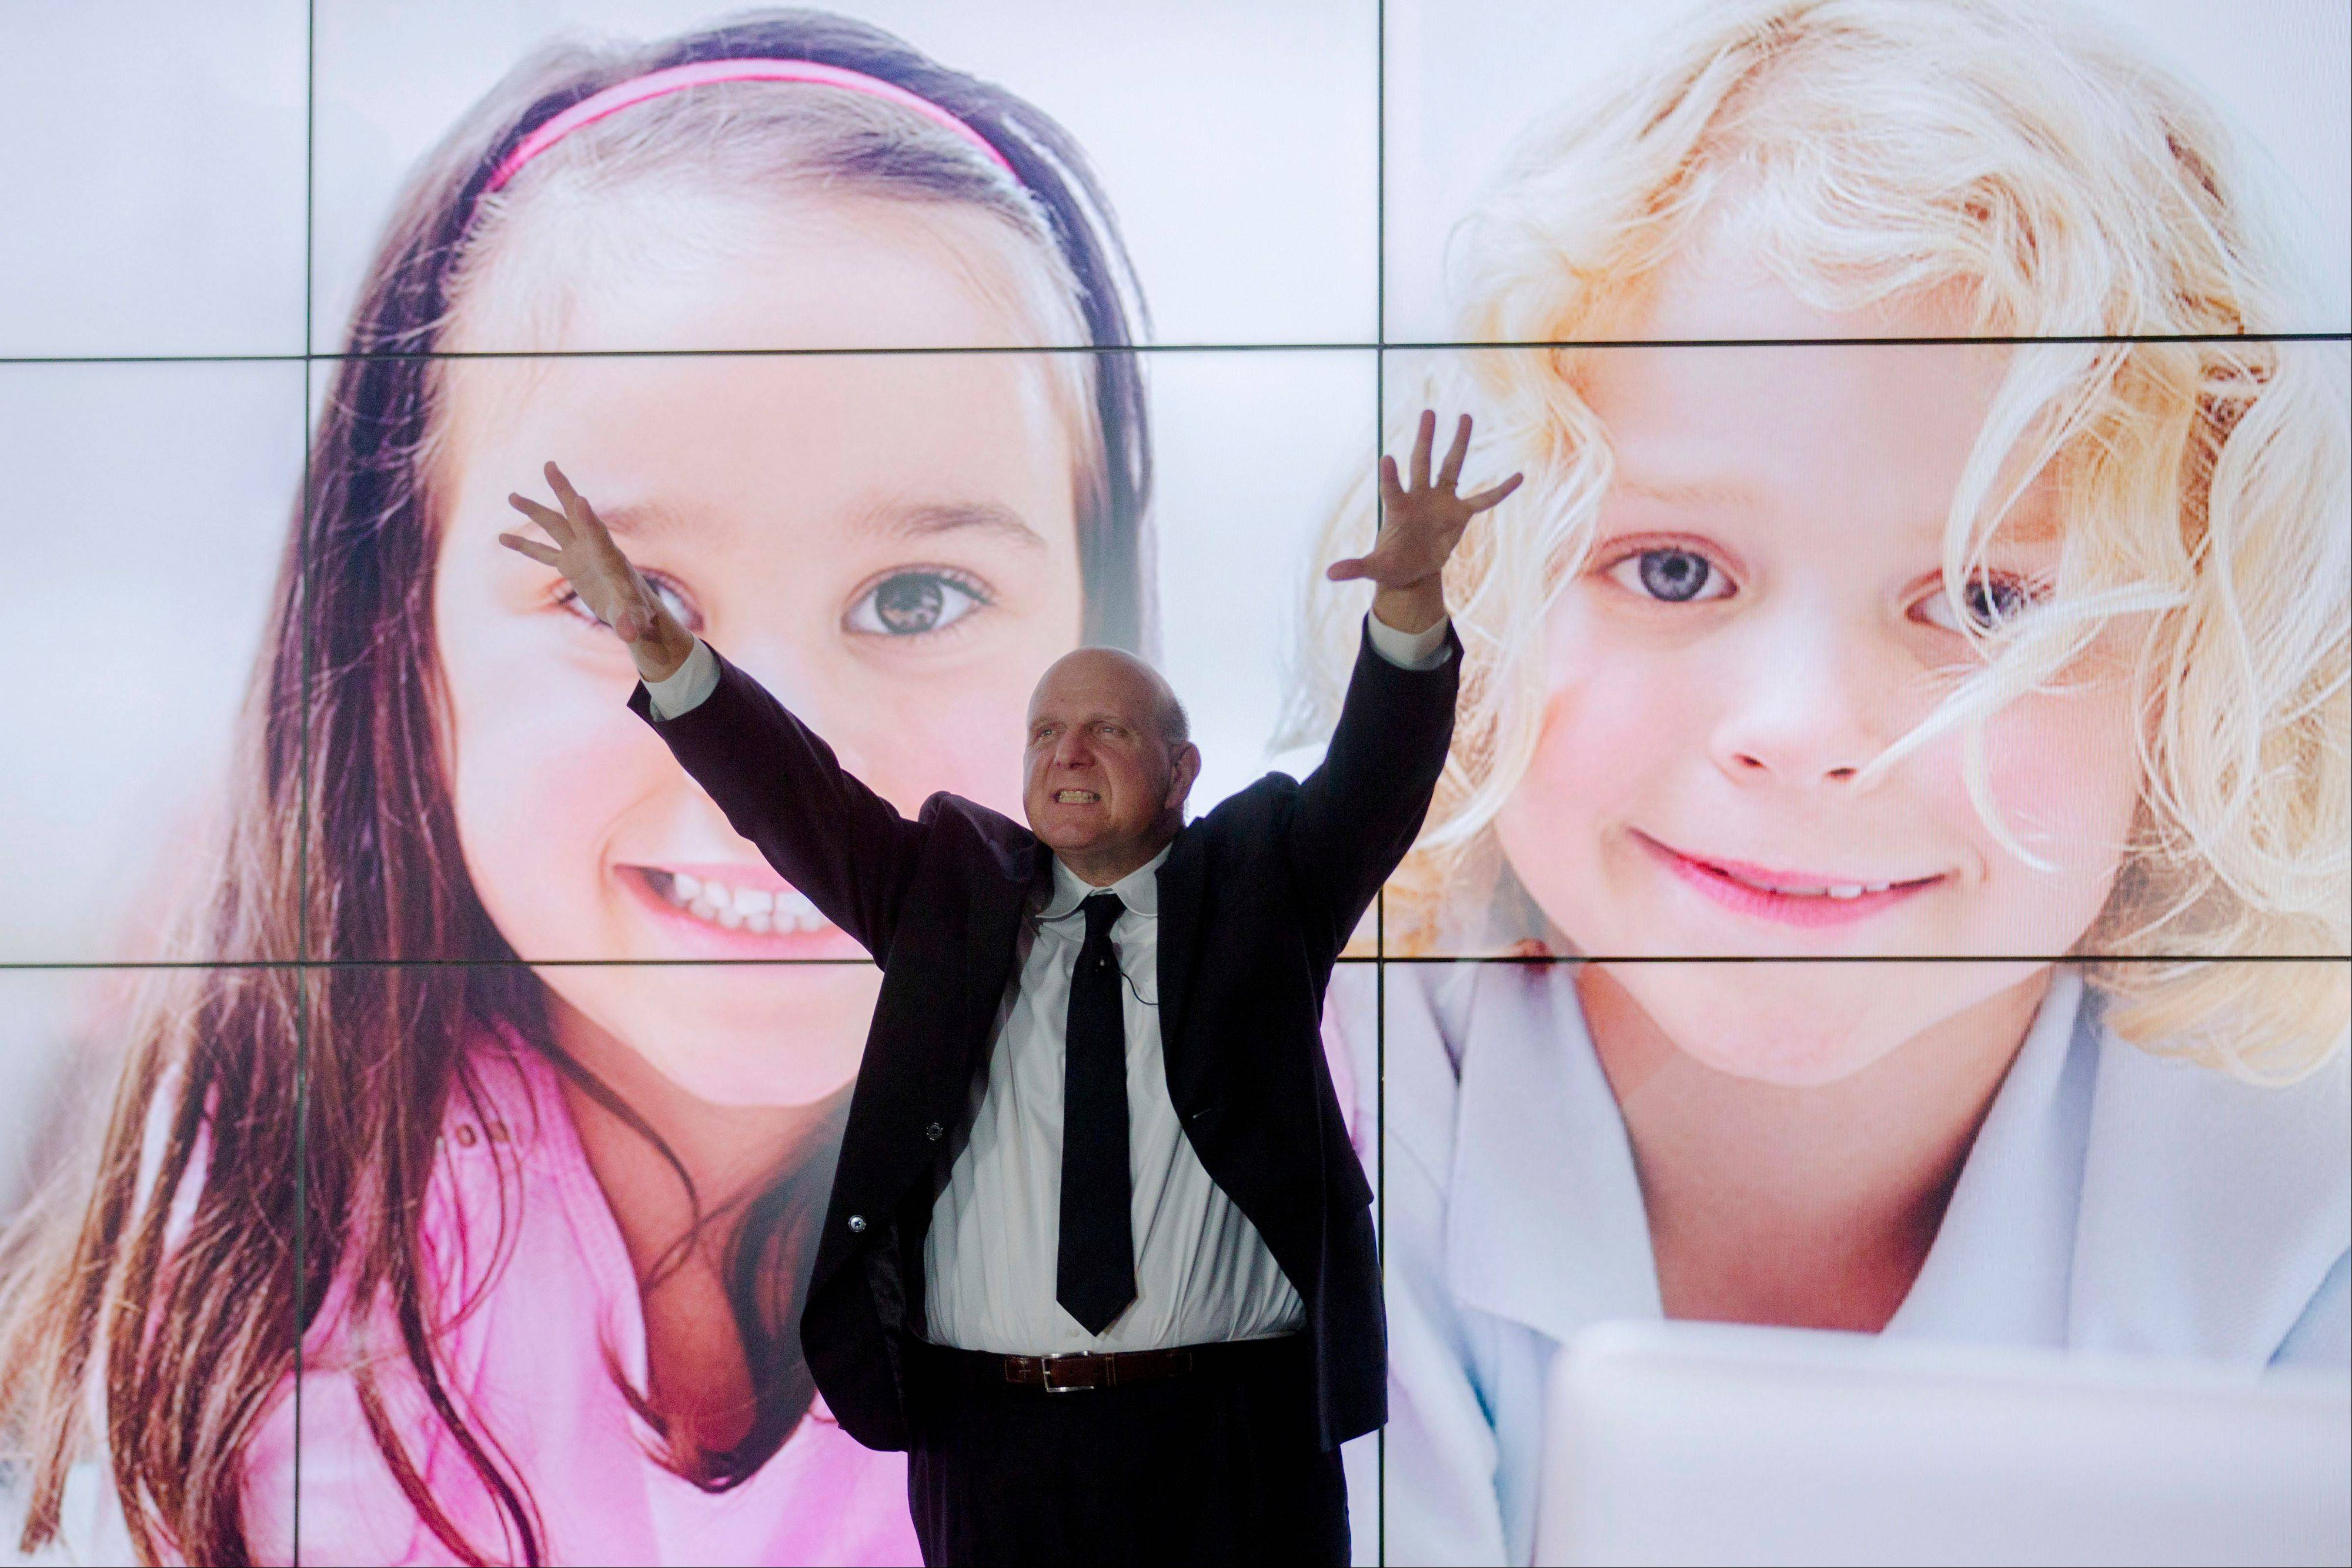 Microsoft CEO Steve Ballmer helped launch the Windows 8 operating system in Berlin last Thursday.